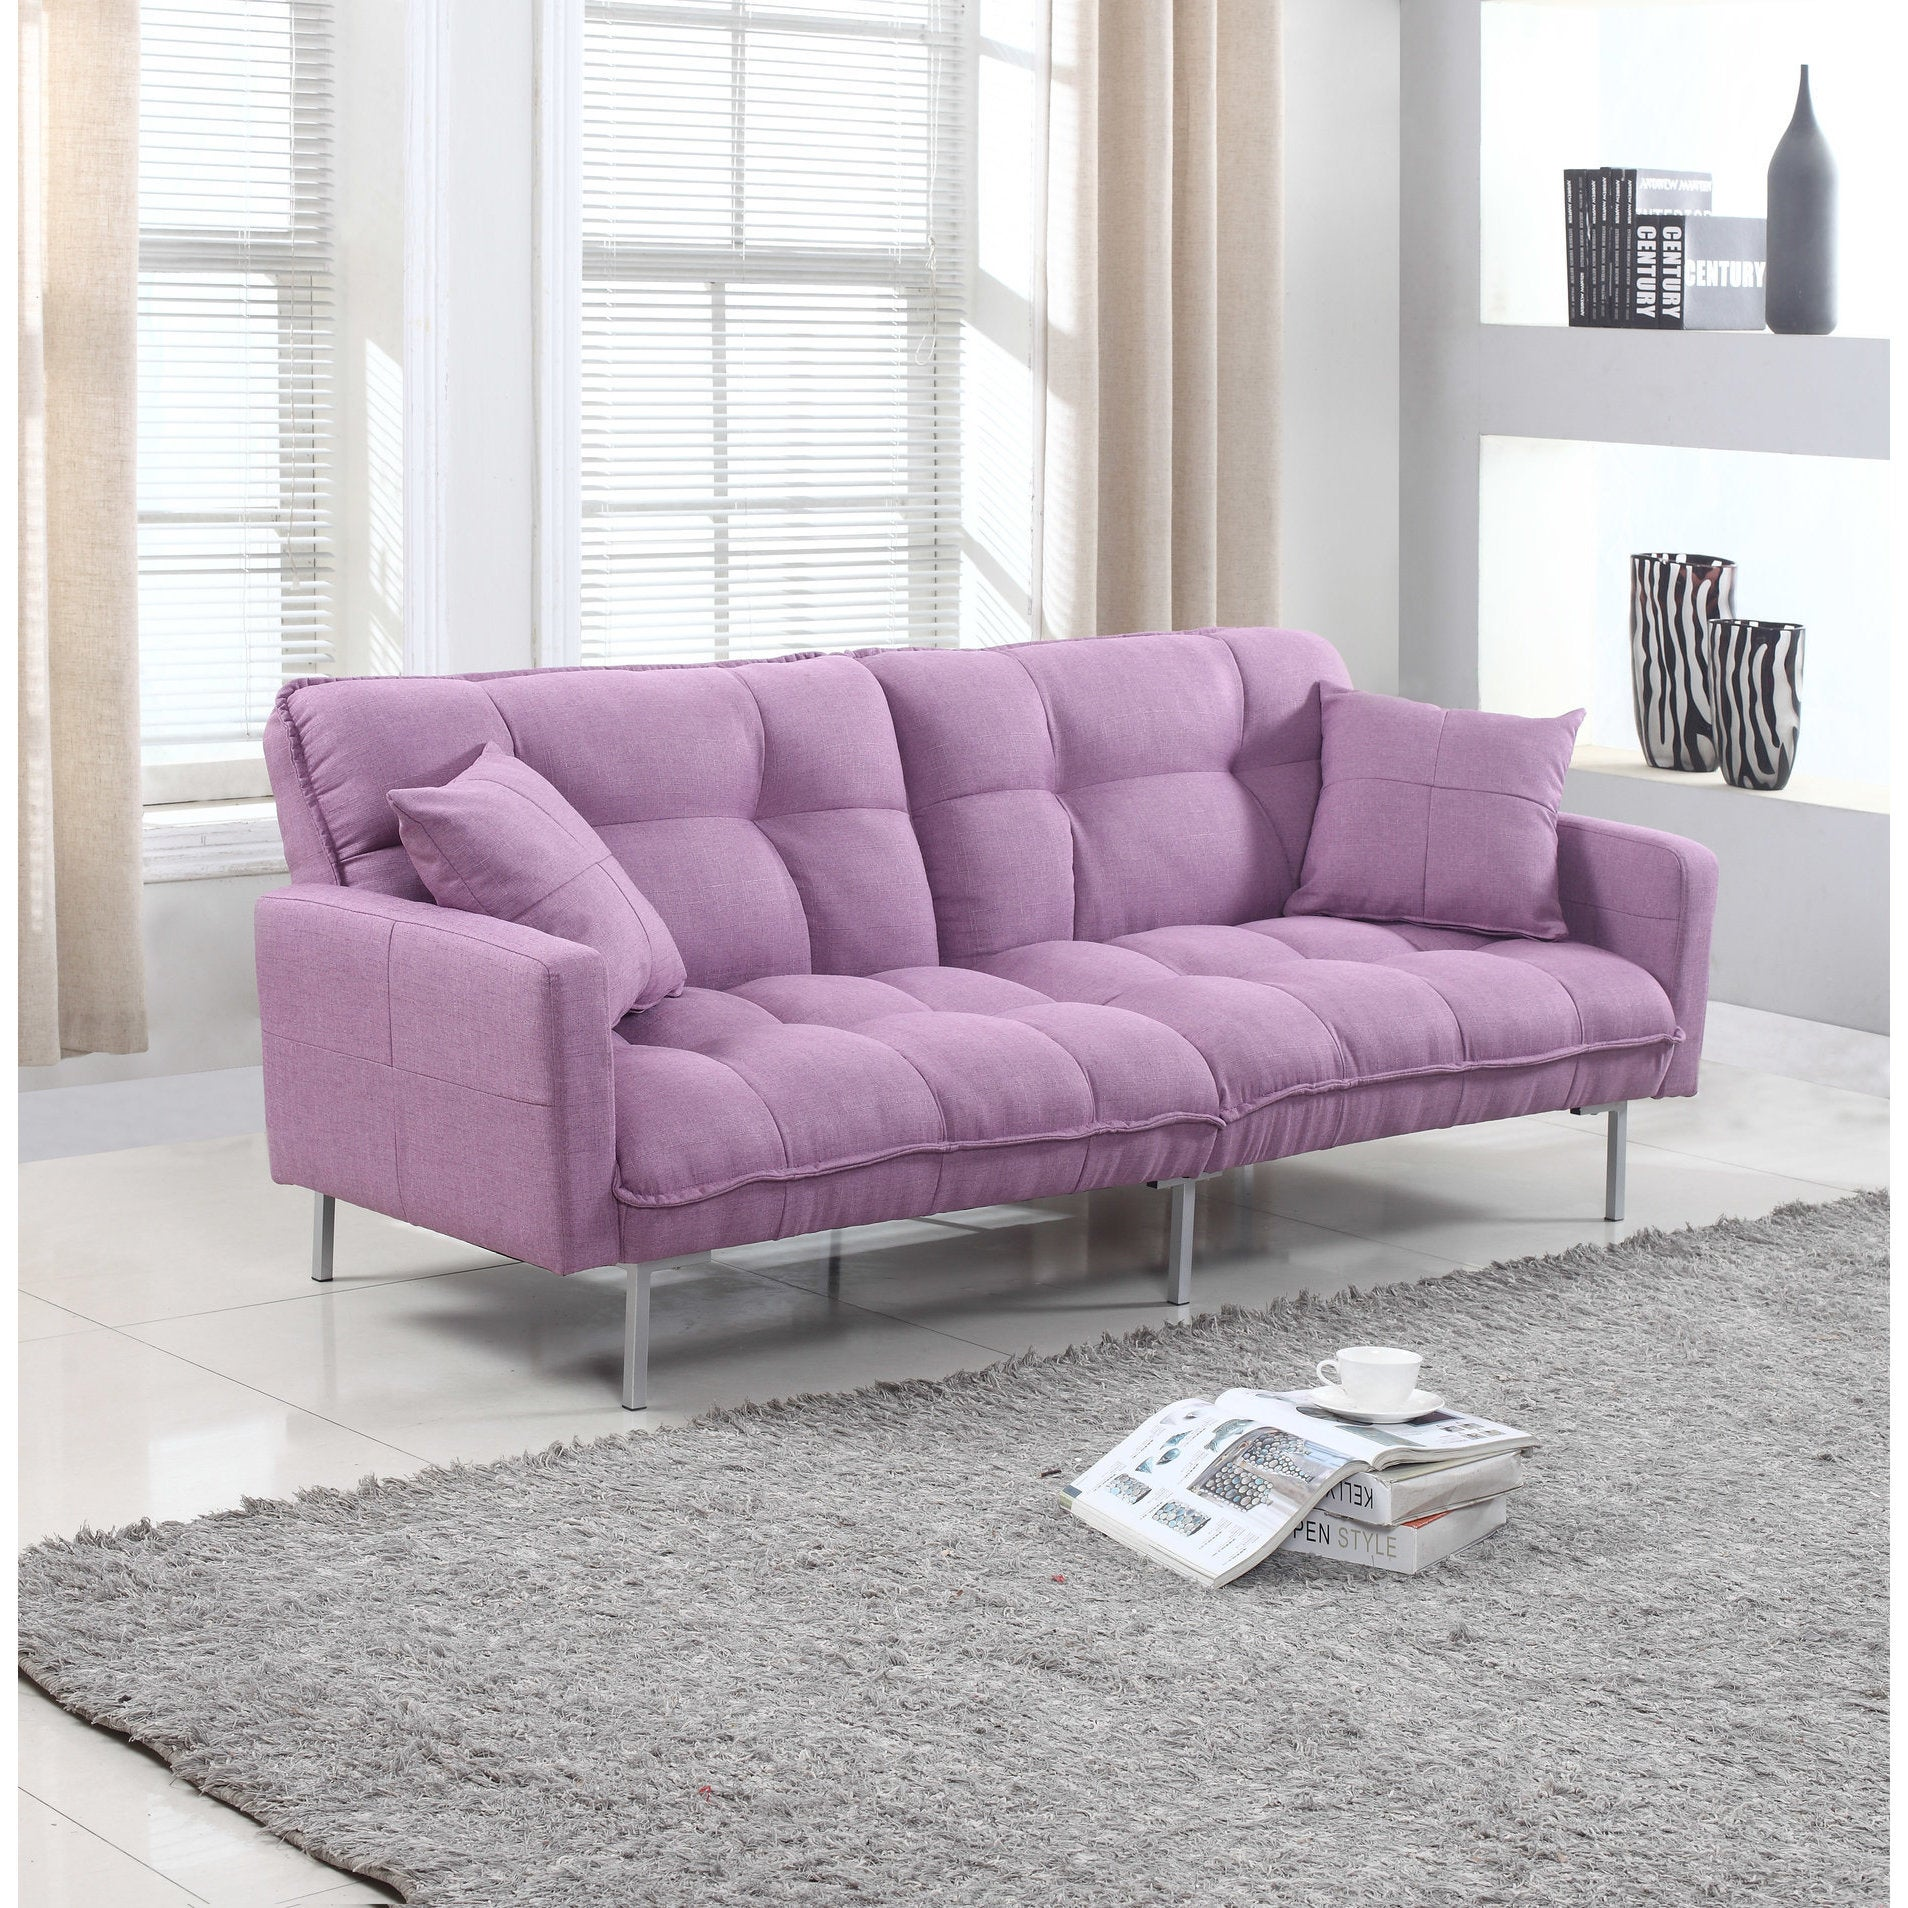 Modern Plush Tufted Linen Fabric Splitback Living Room Sleeper Futon Free Shipping Today Com 11967021